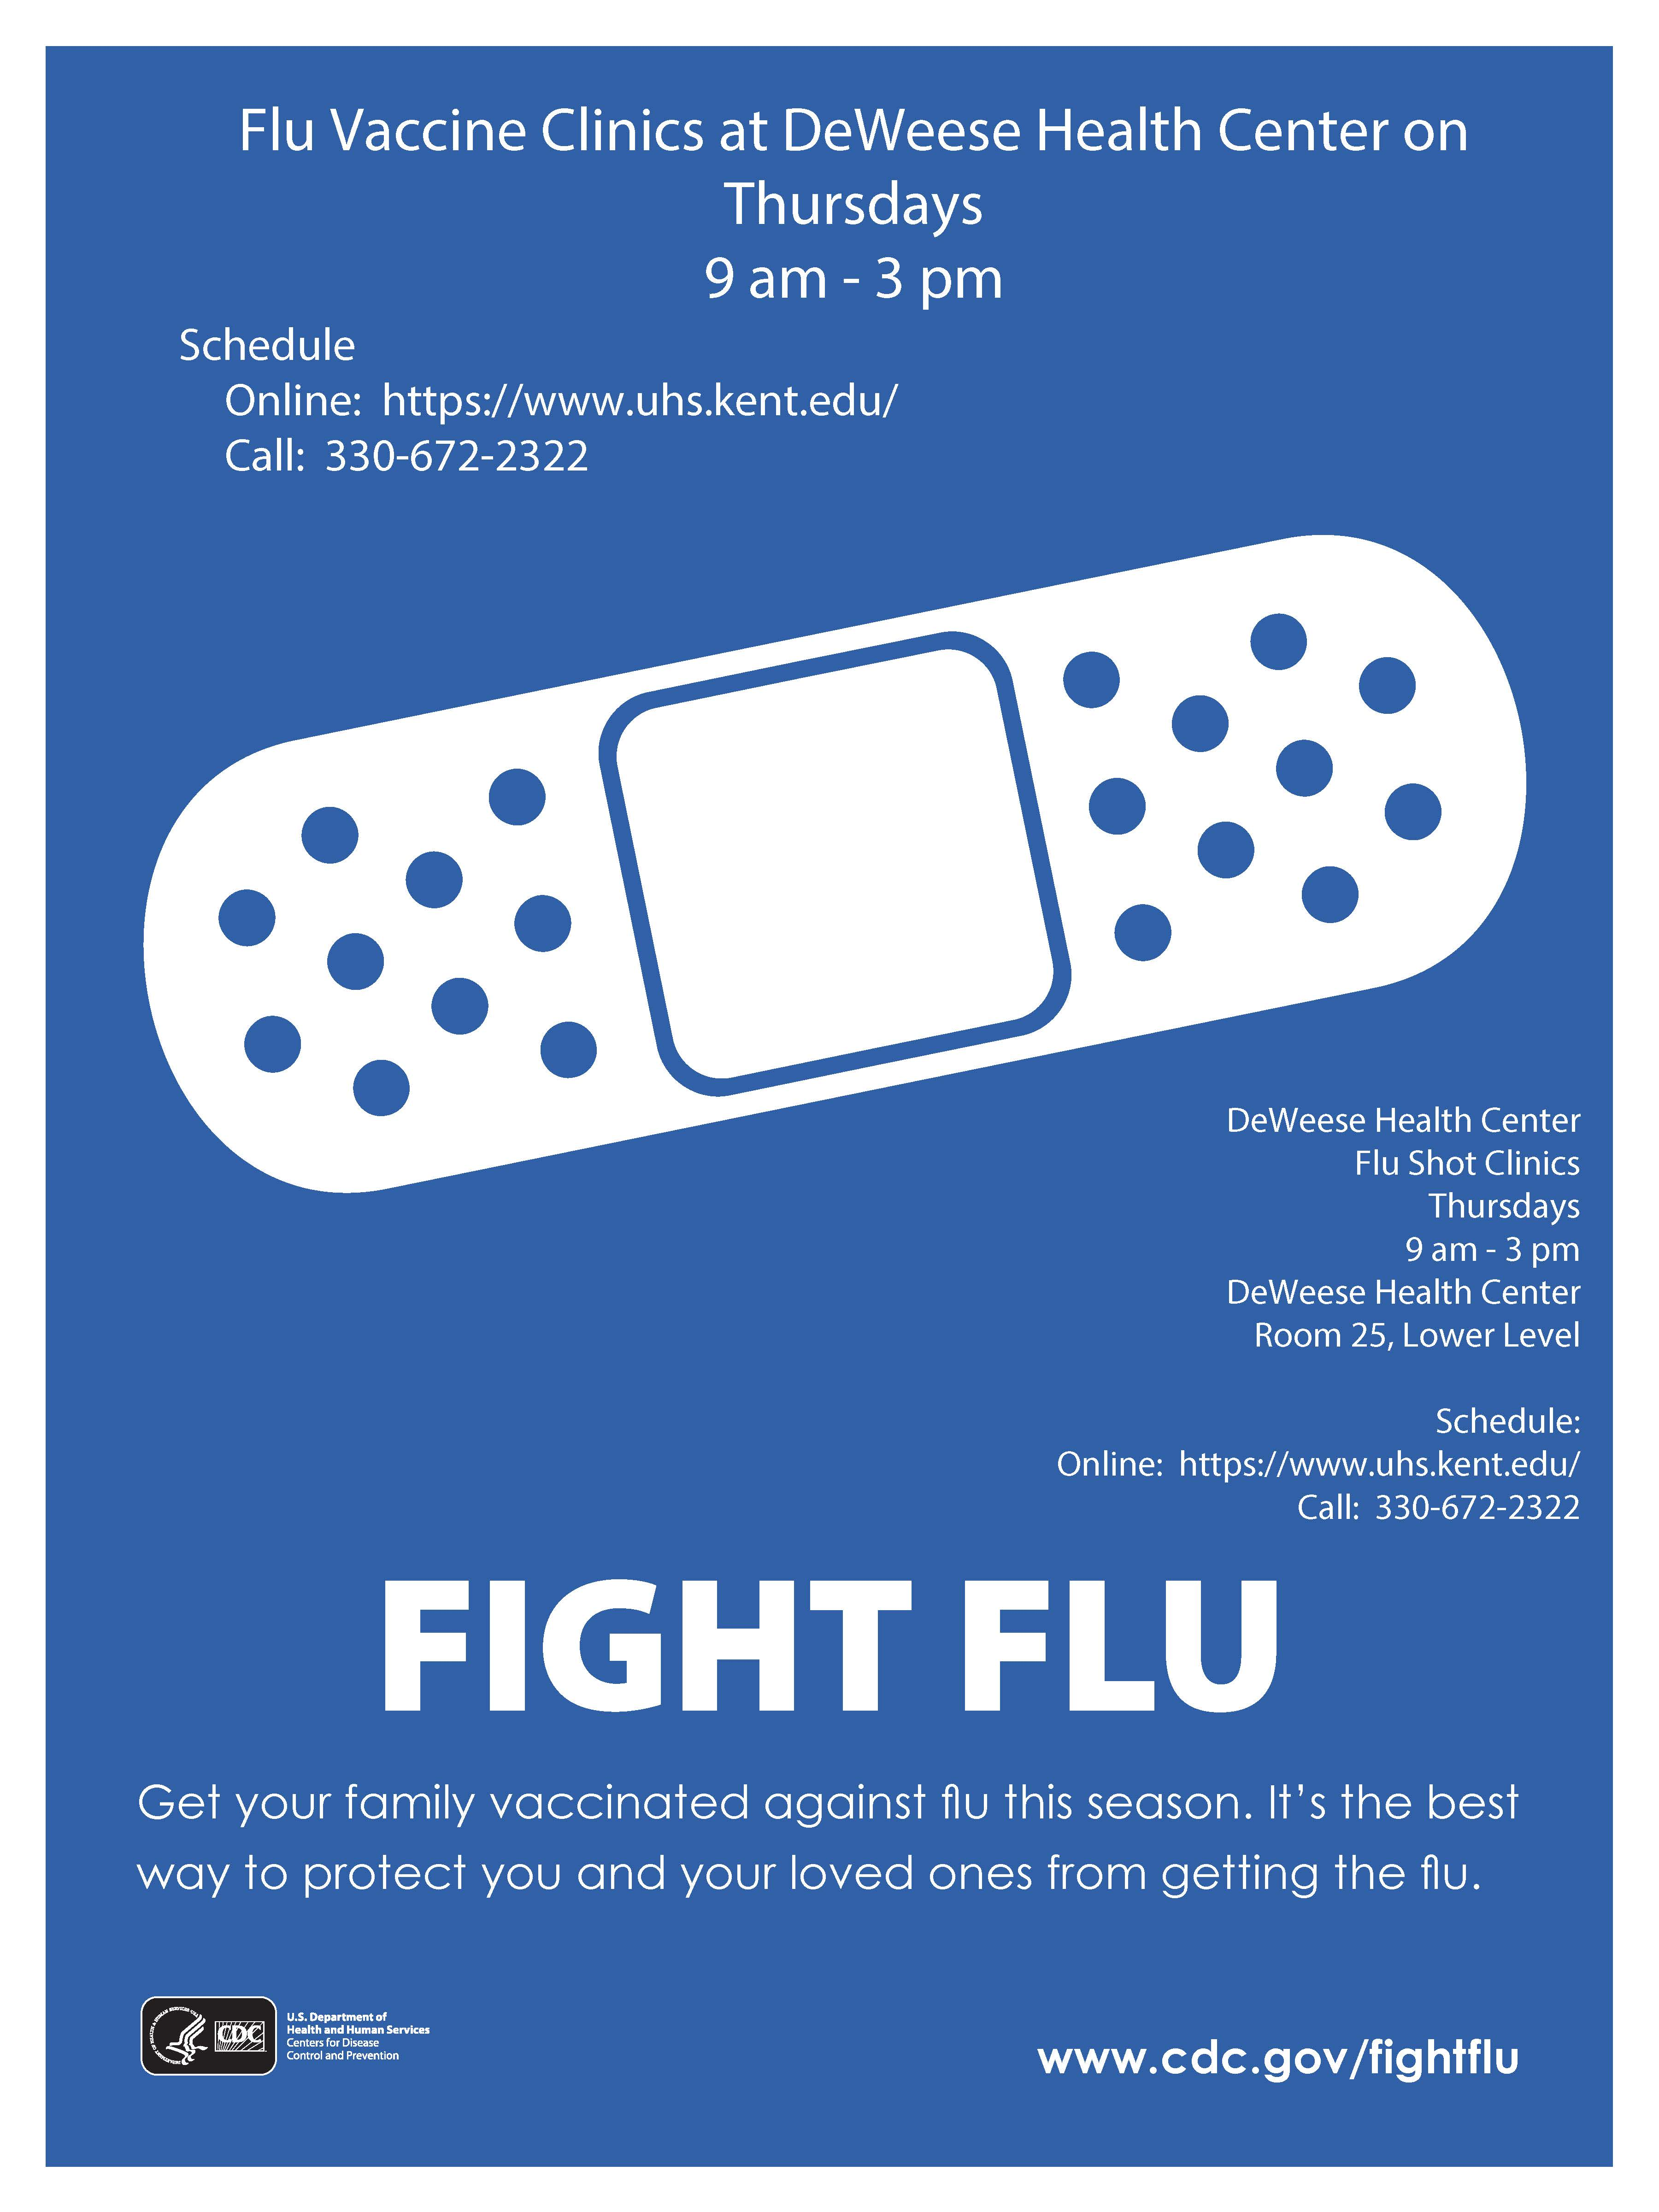 Fight Flu CDC adhesive bandage Flu Vaccine Clinic at DeWeese Health Center Thursdays 9am - 3pm